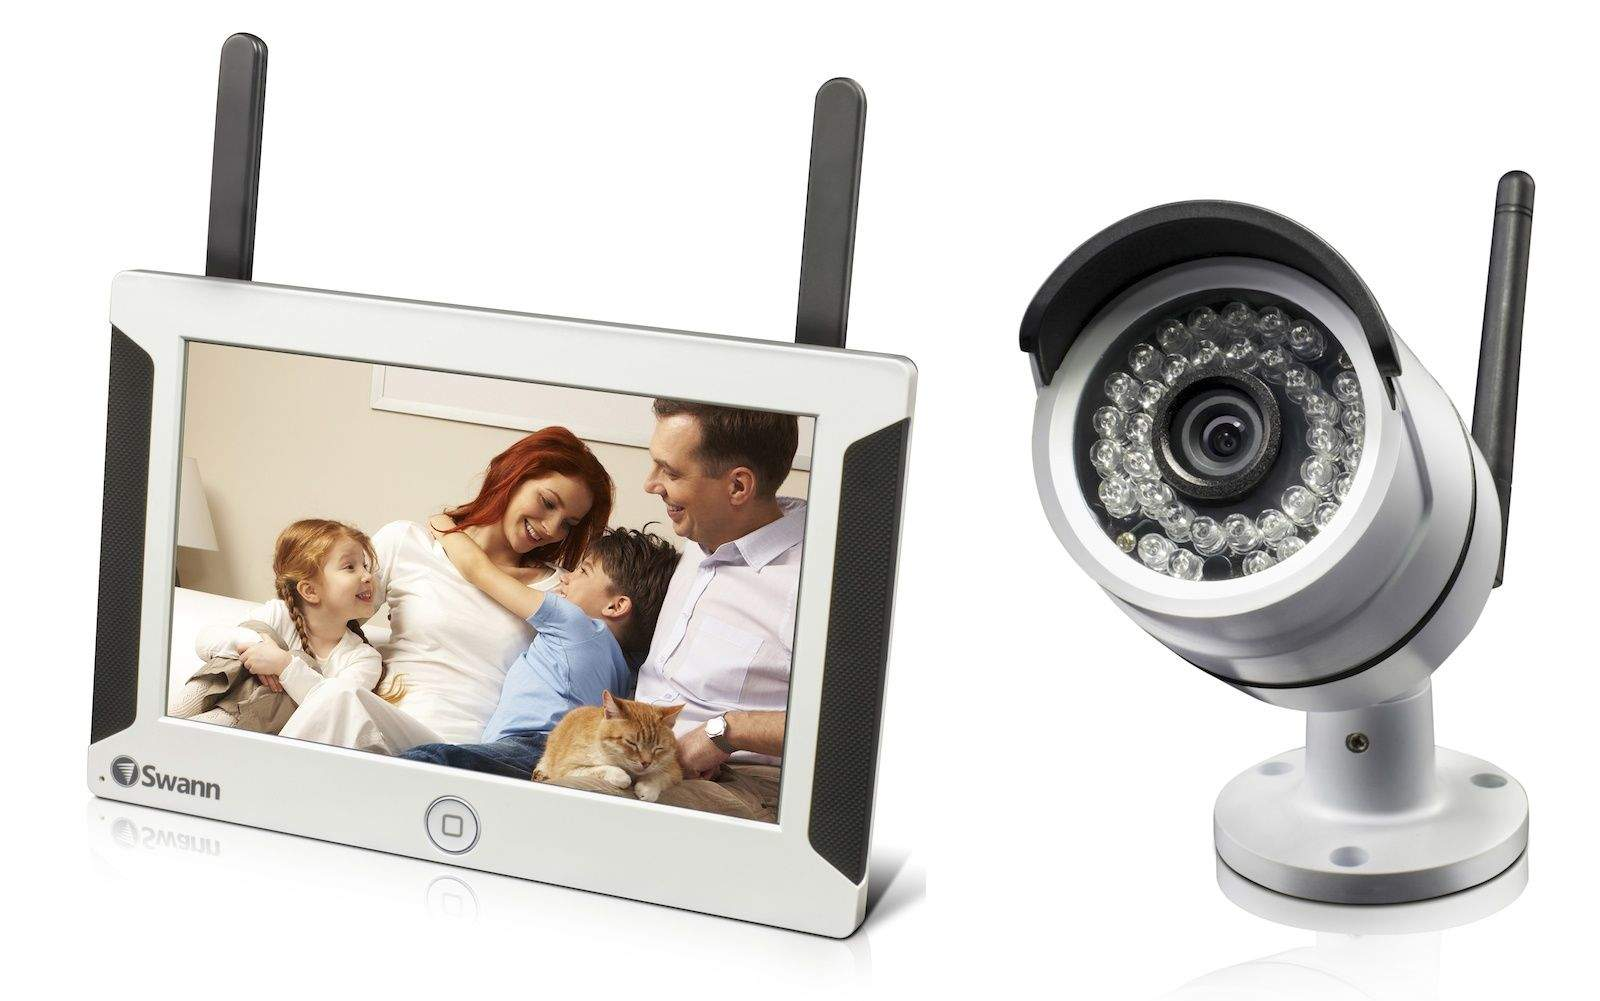 Swann S New Security Camera Comes With Its Own Tablet Like